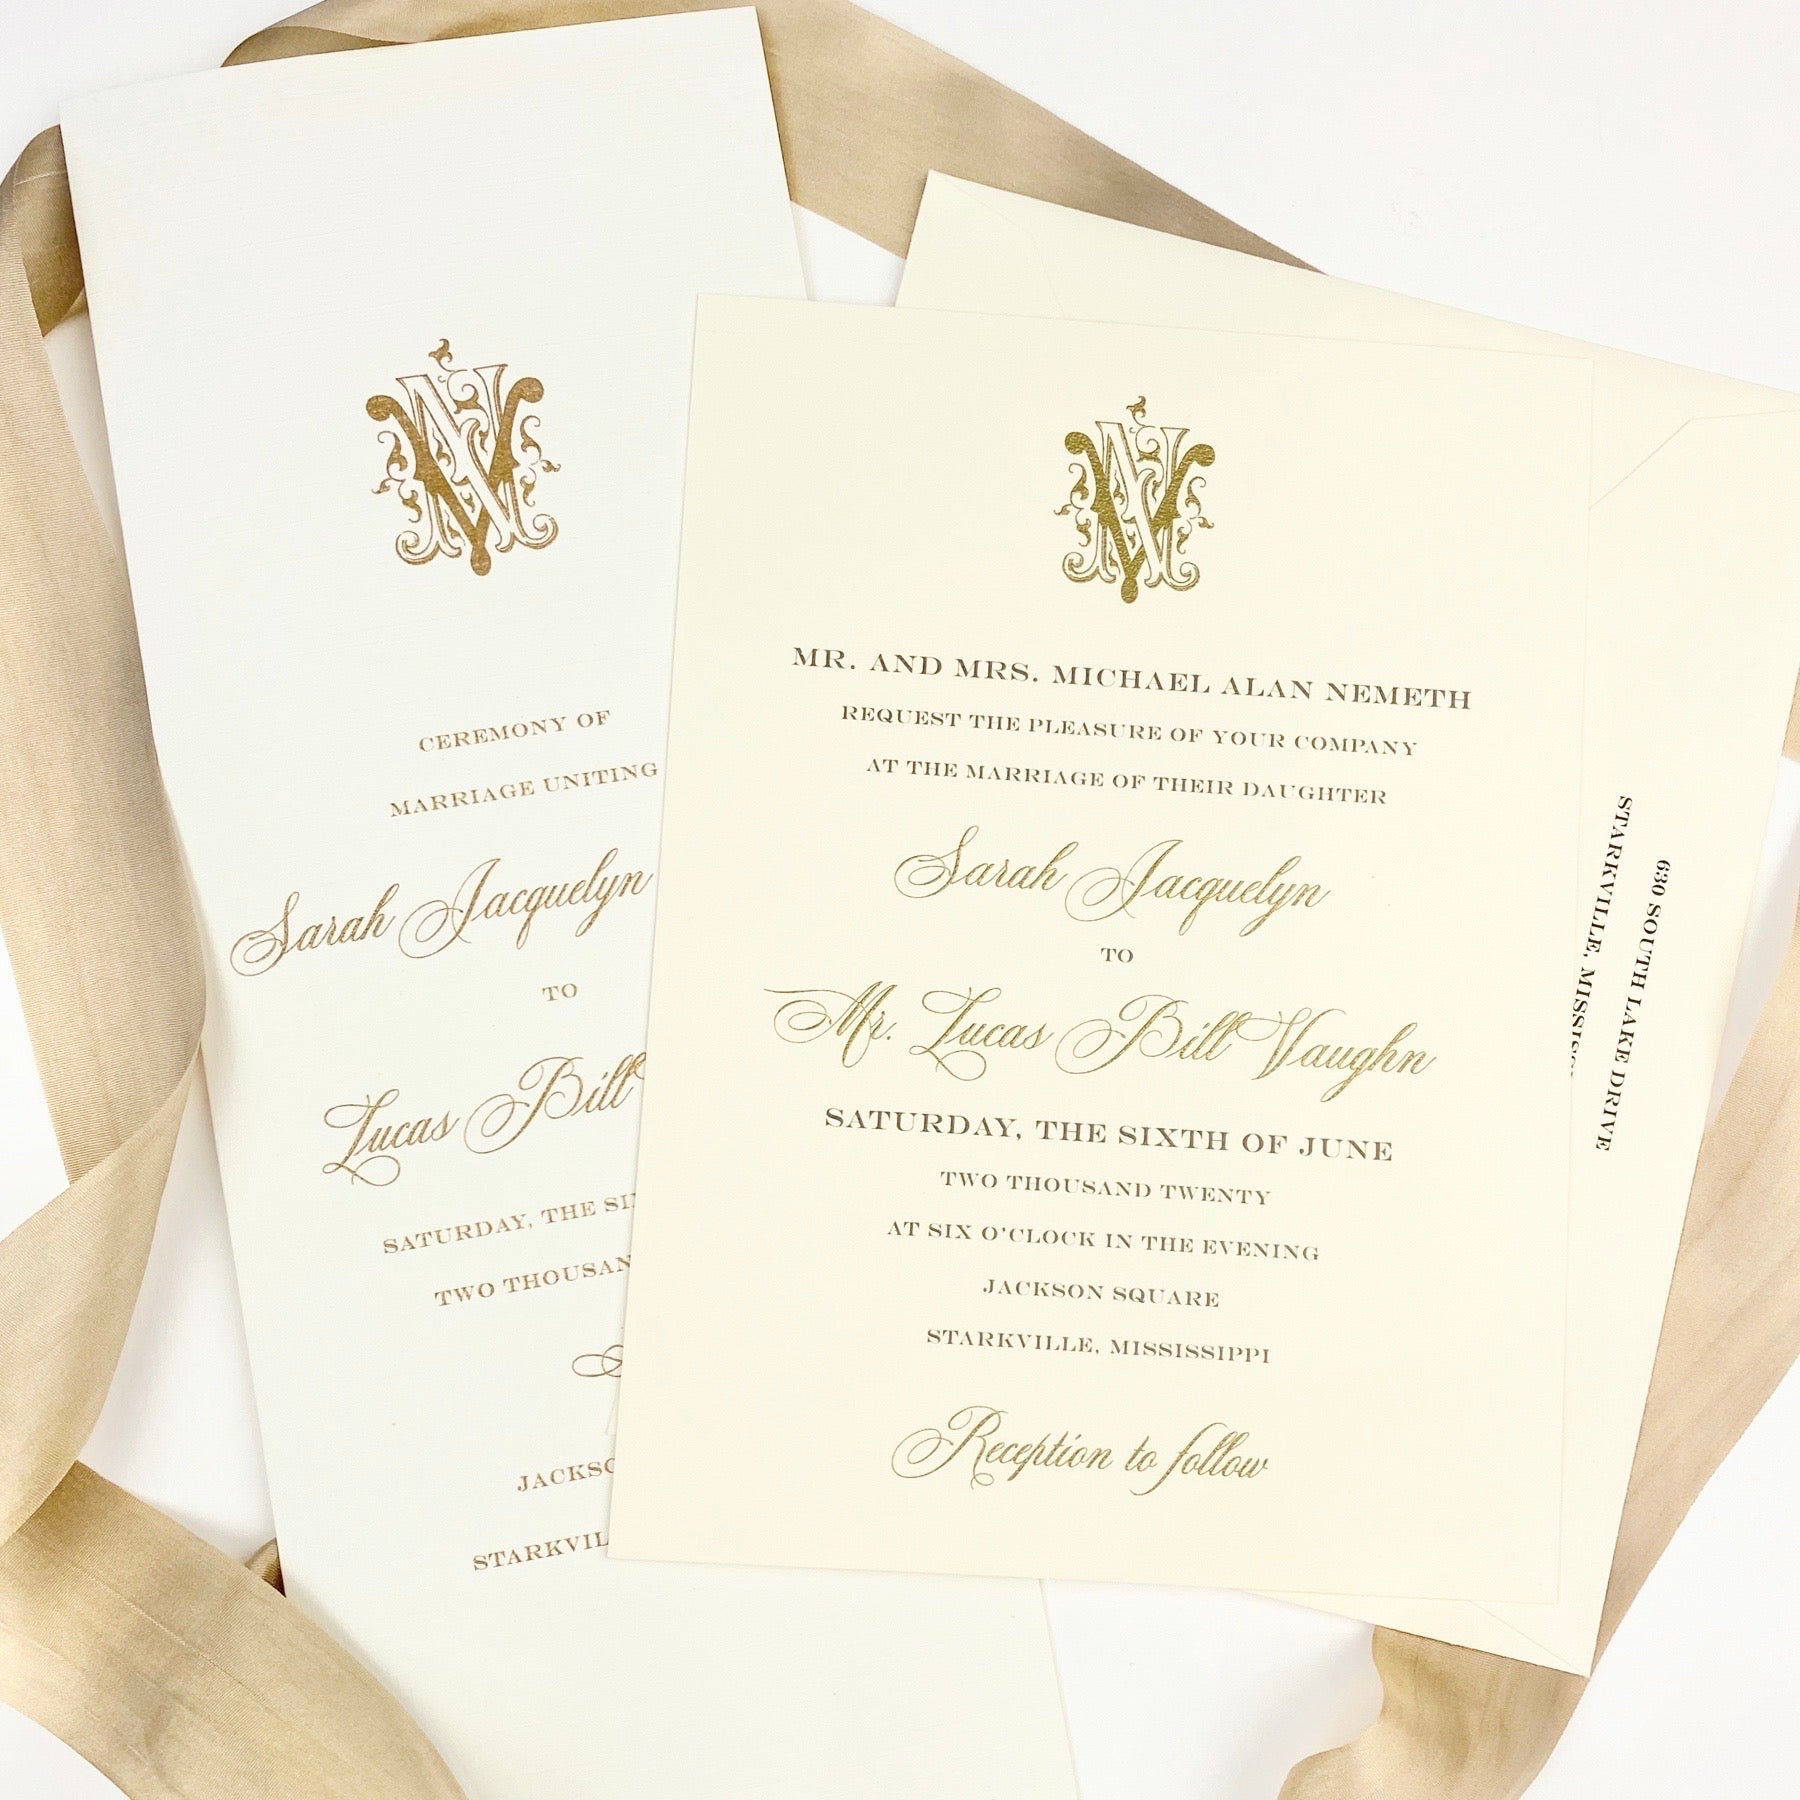 Jacquelyn Wedding Invitation - Deposit Listing